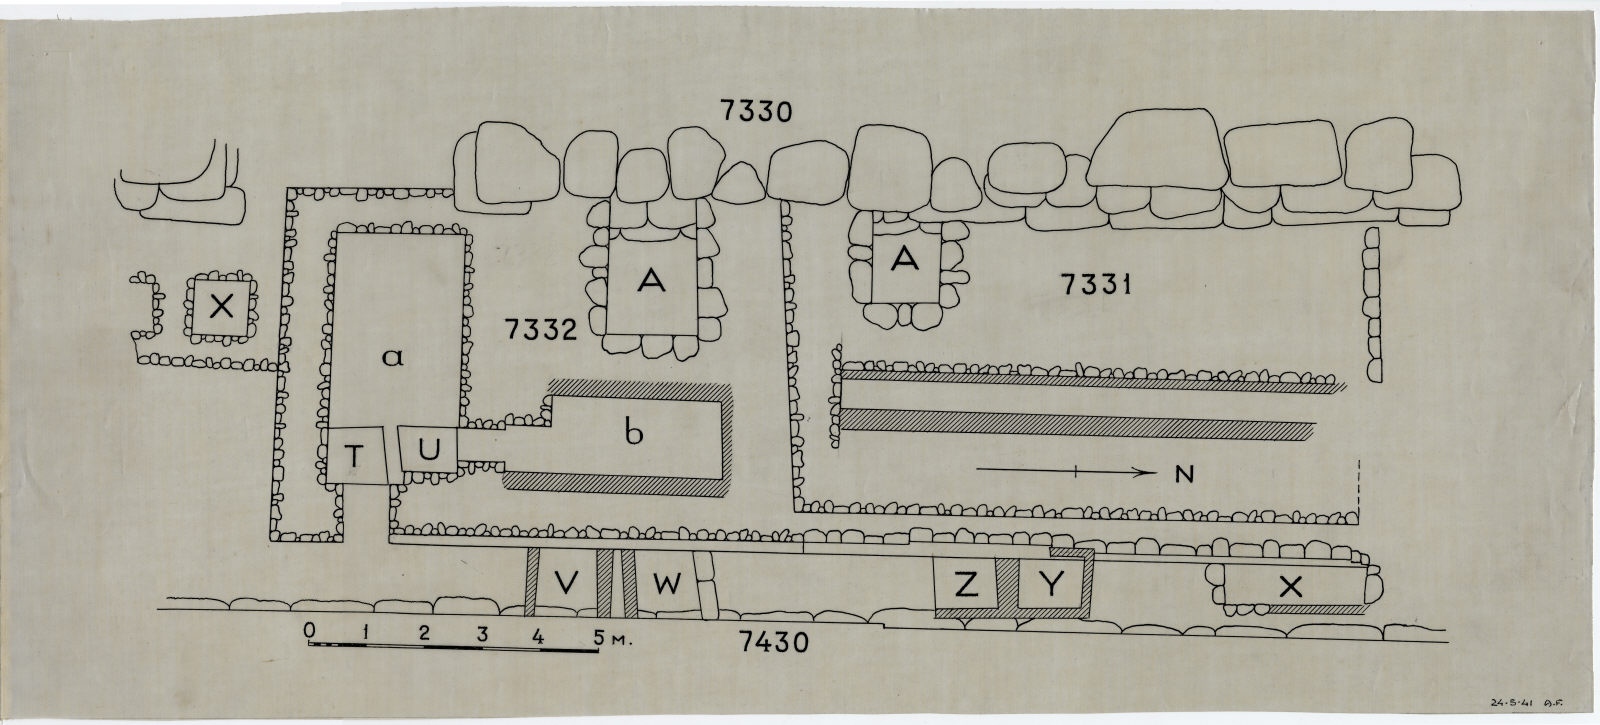 Maps and plans: Plan of Cemetery G 7000, Street E of G 7330: G 7330, G 7331, G 7332, G 7430